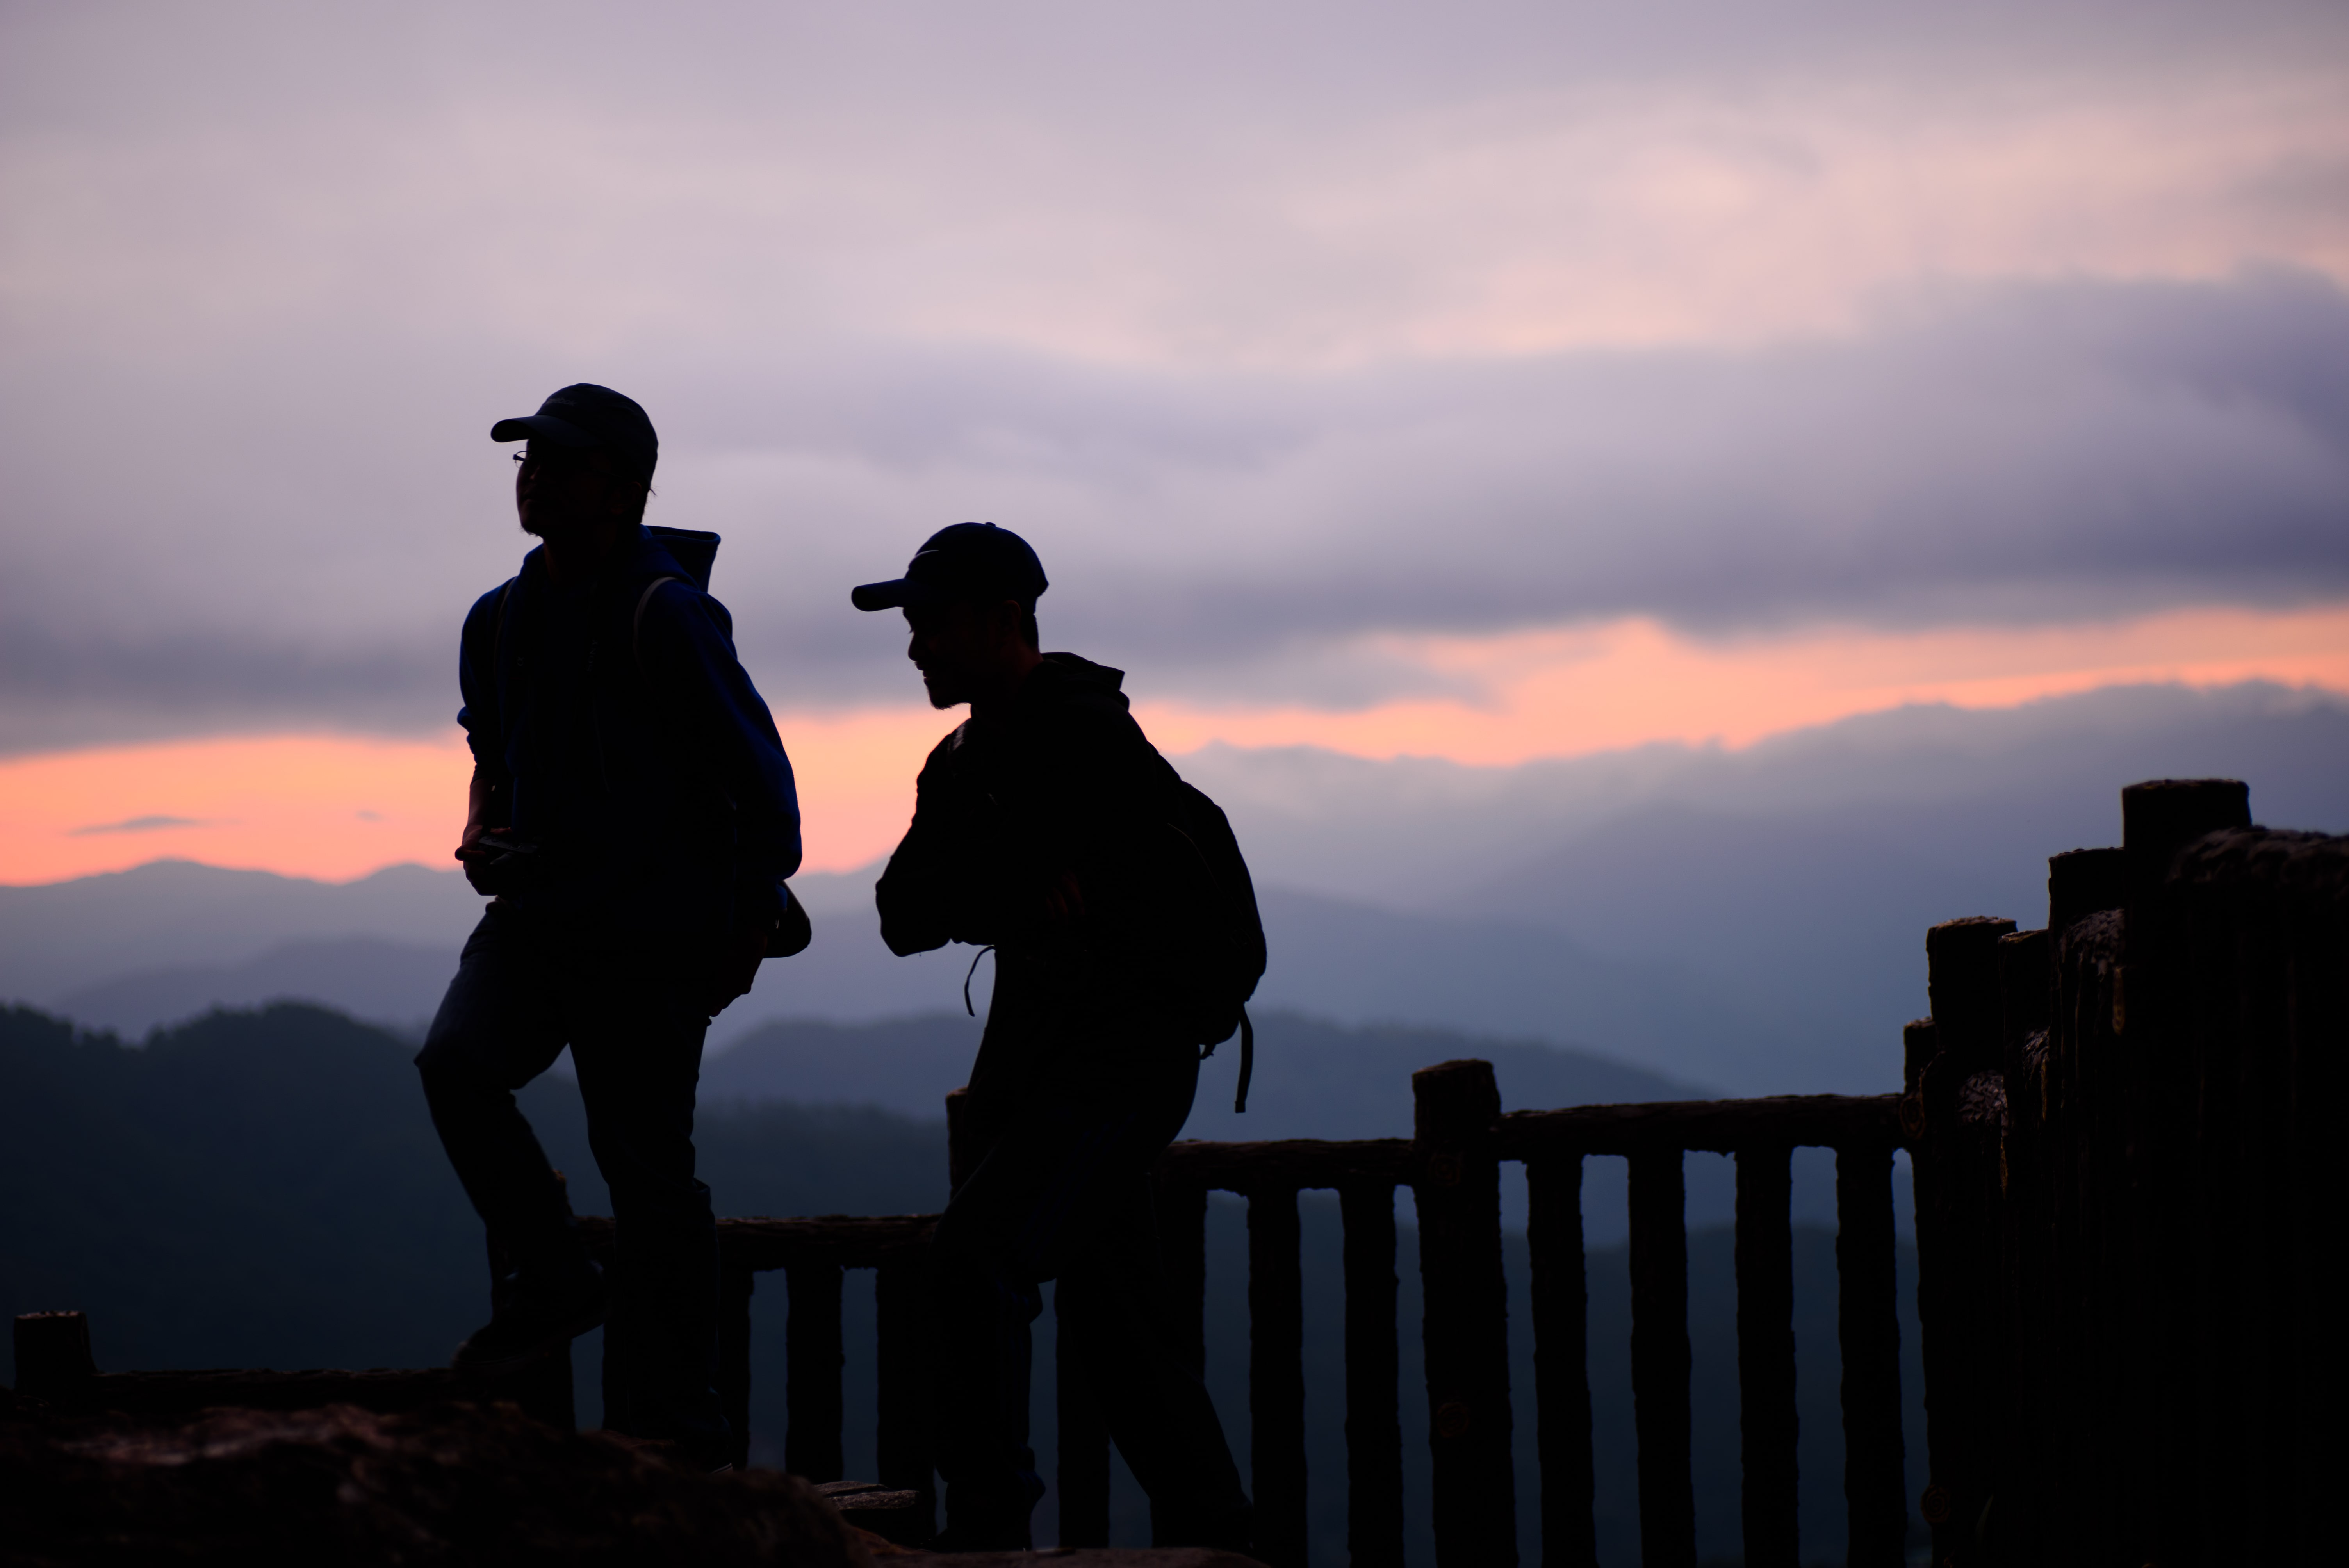 Tourists waiting for sunrise at Mines View Park in Baguio